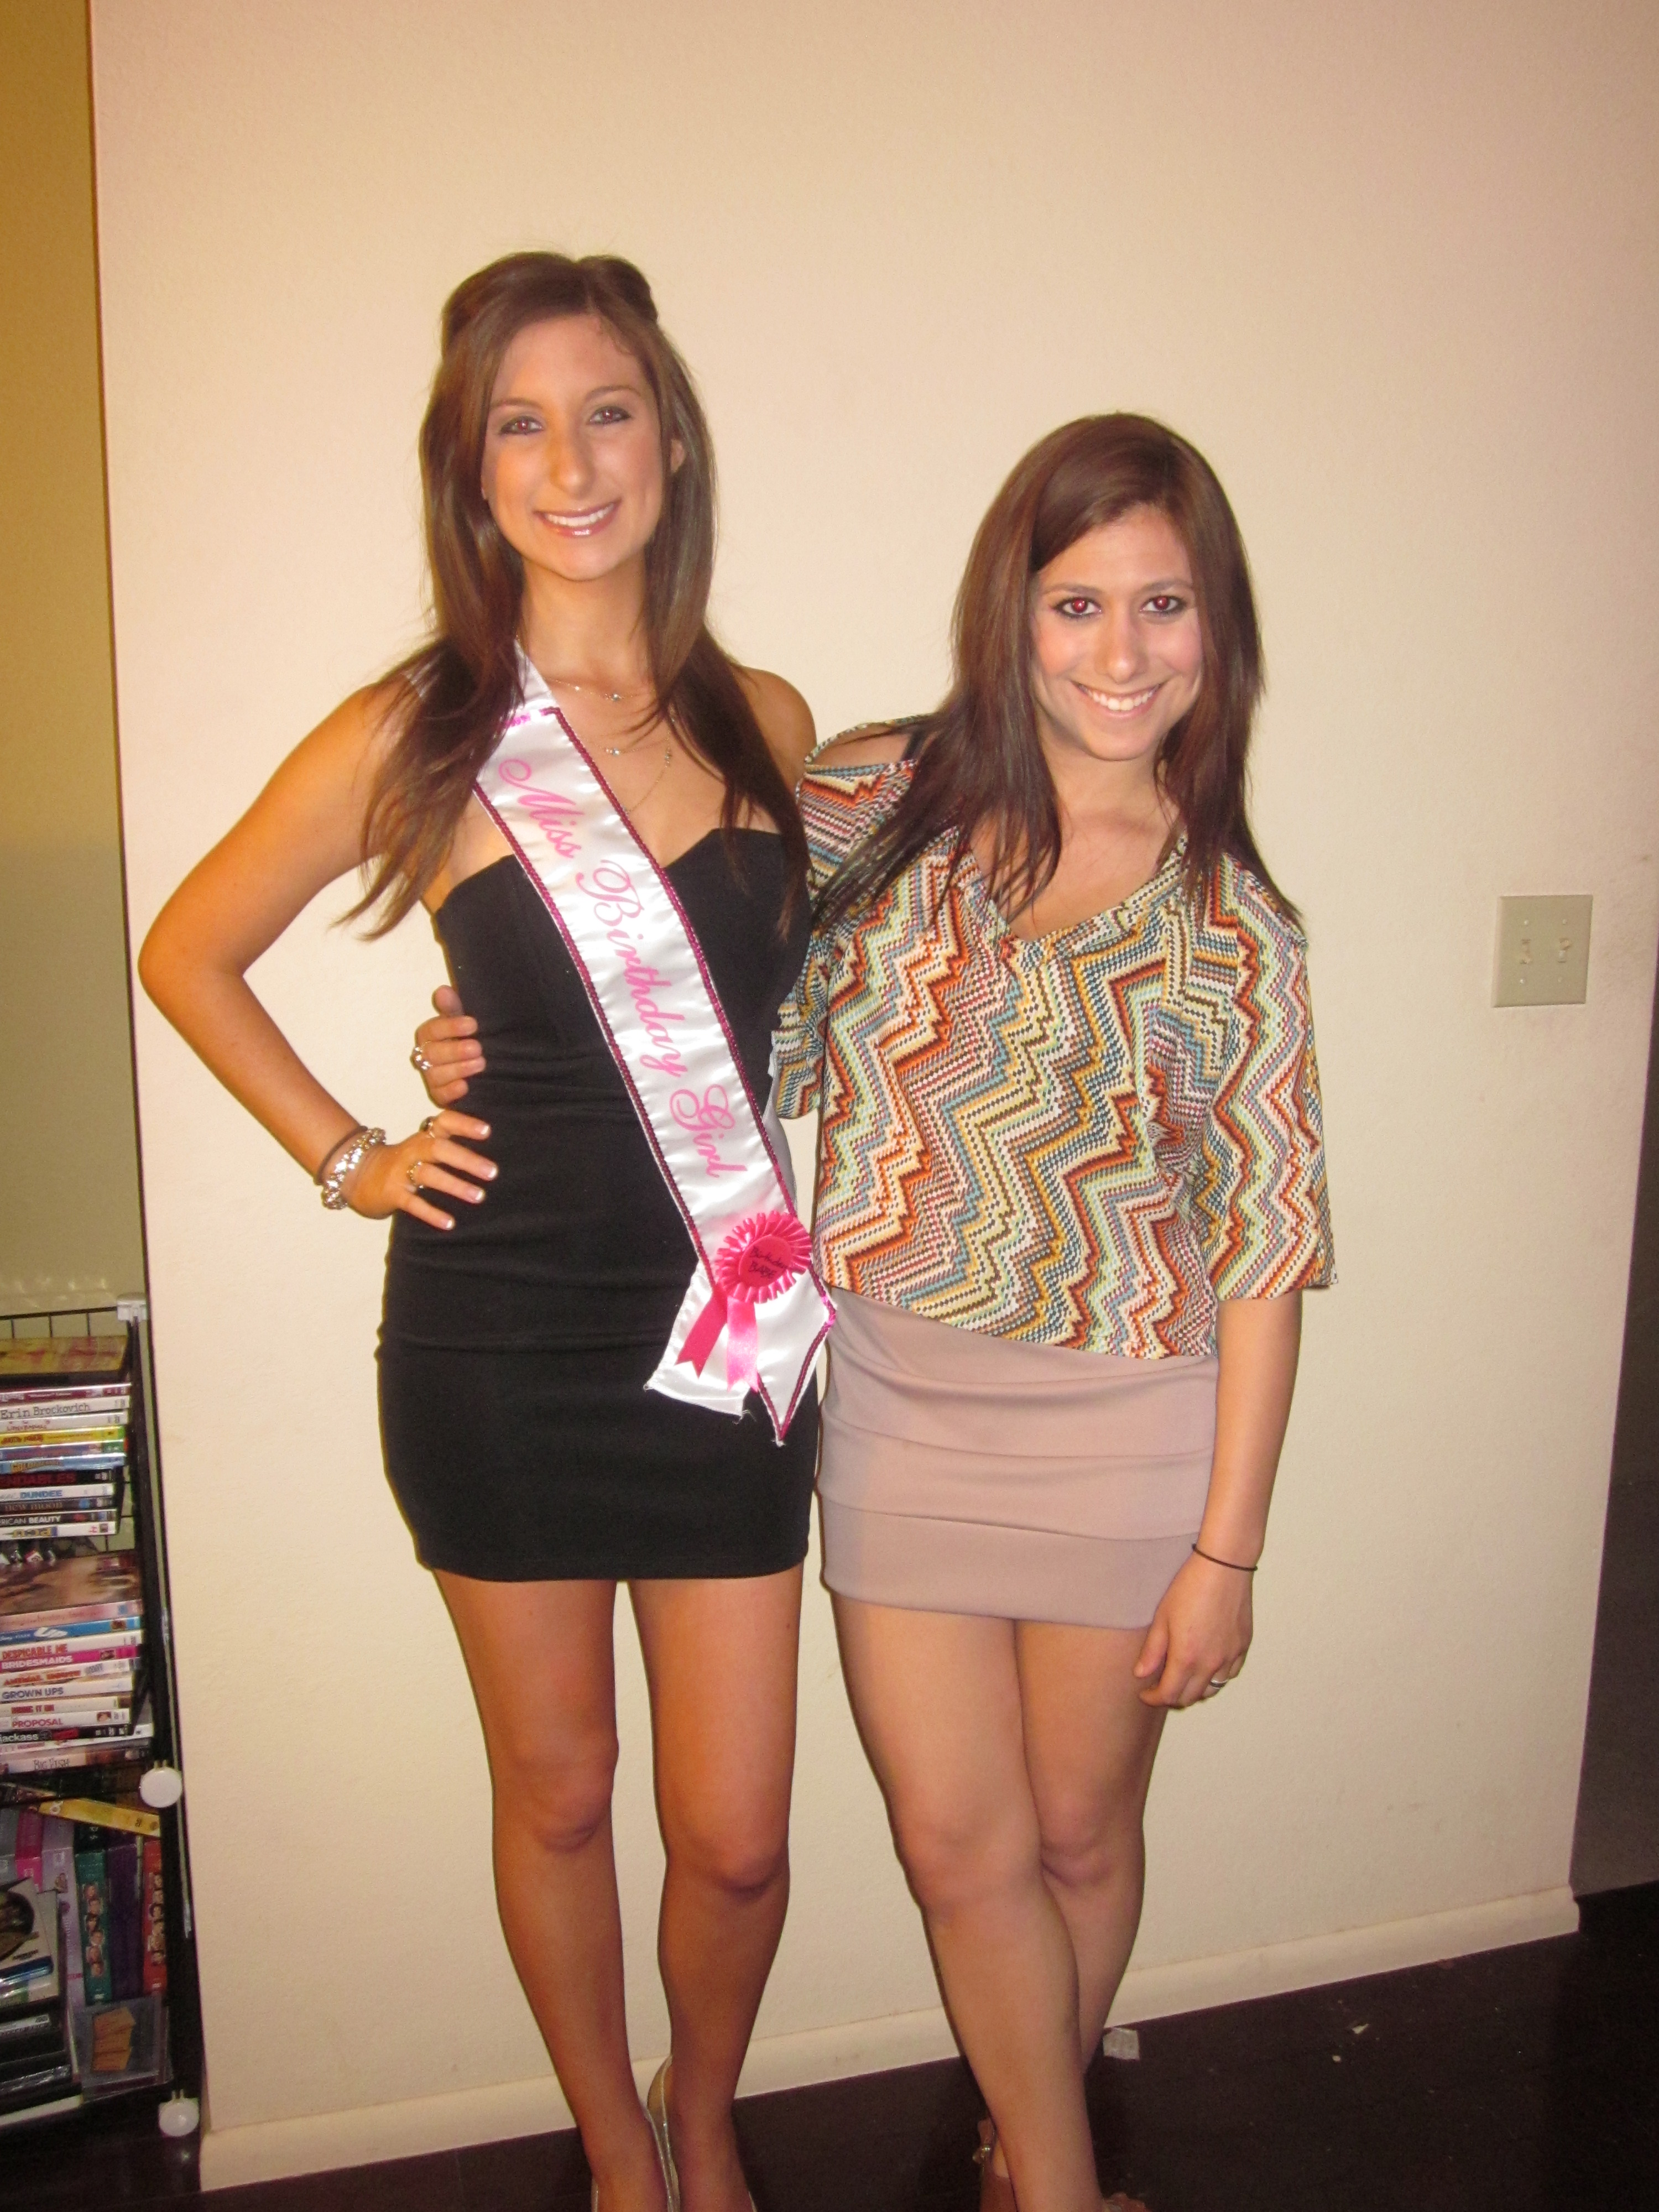 21st birthday outfit ideas